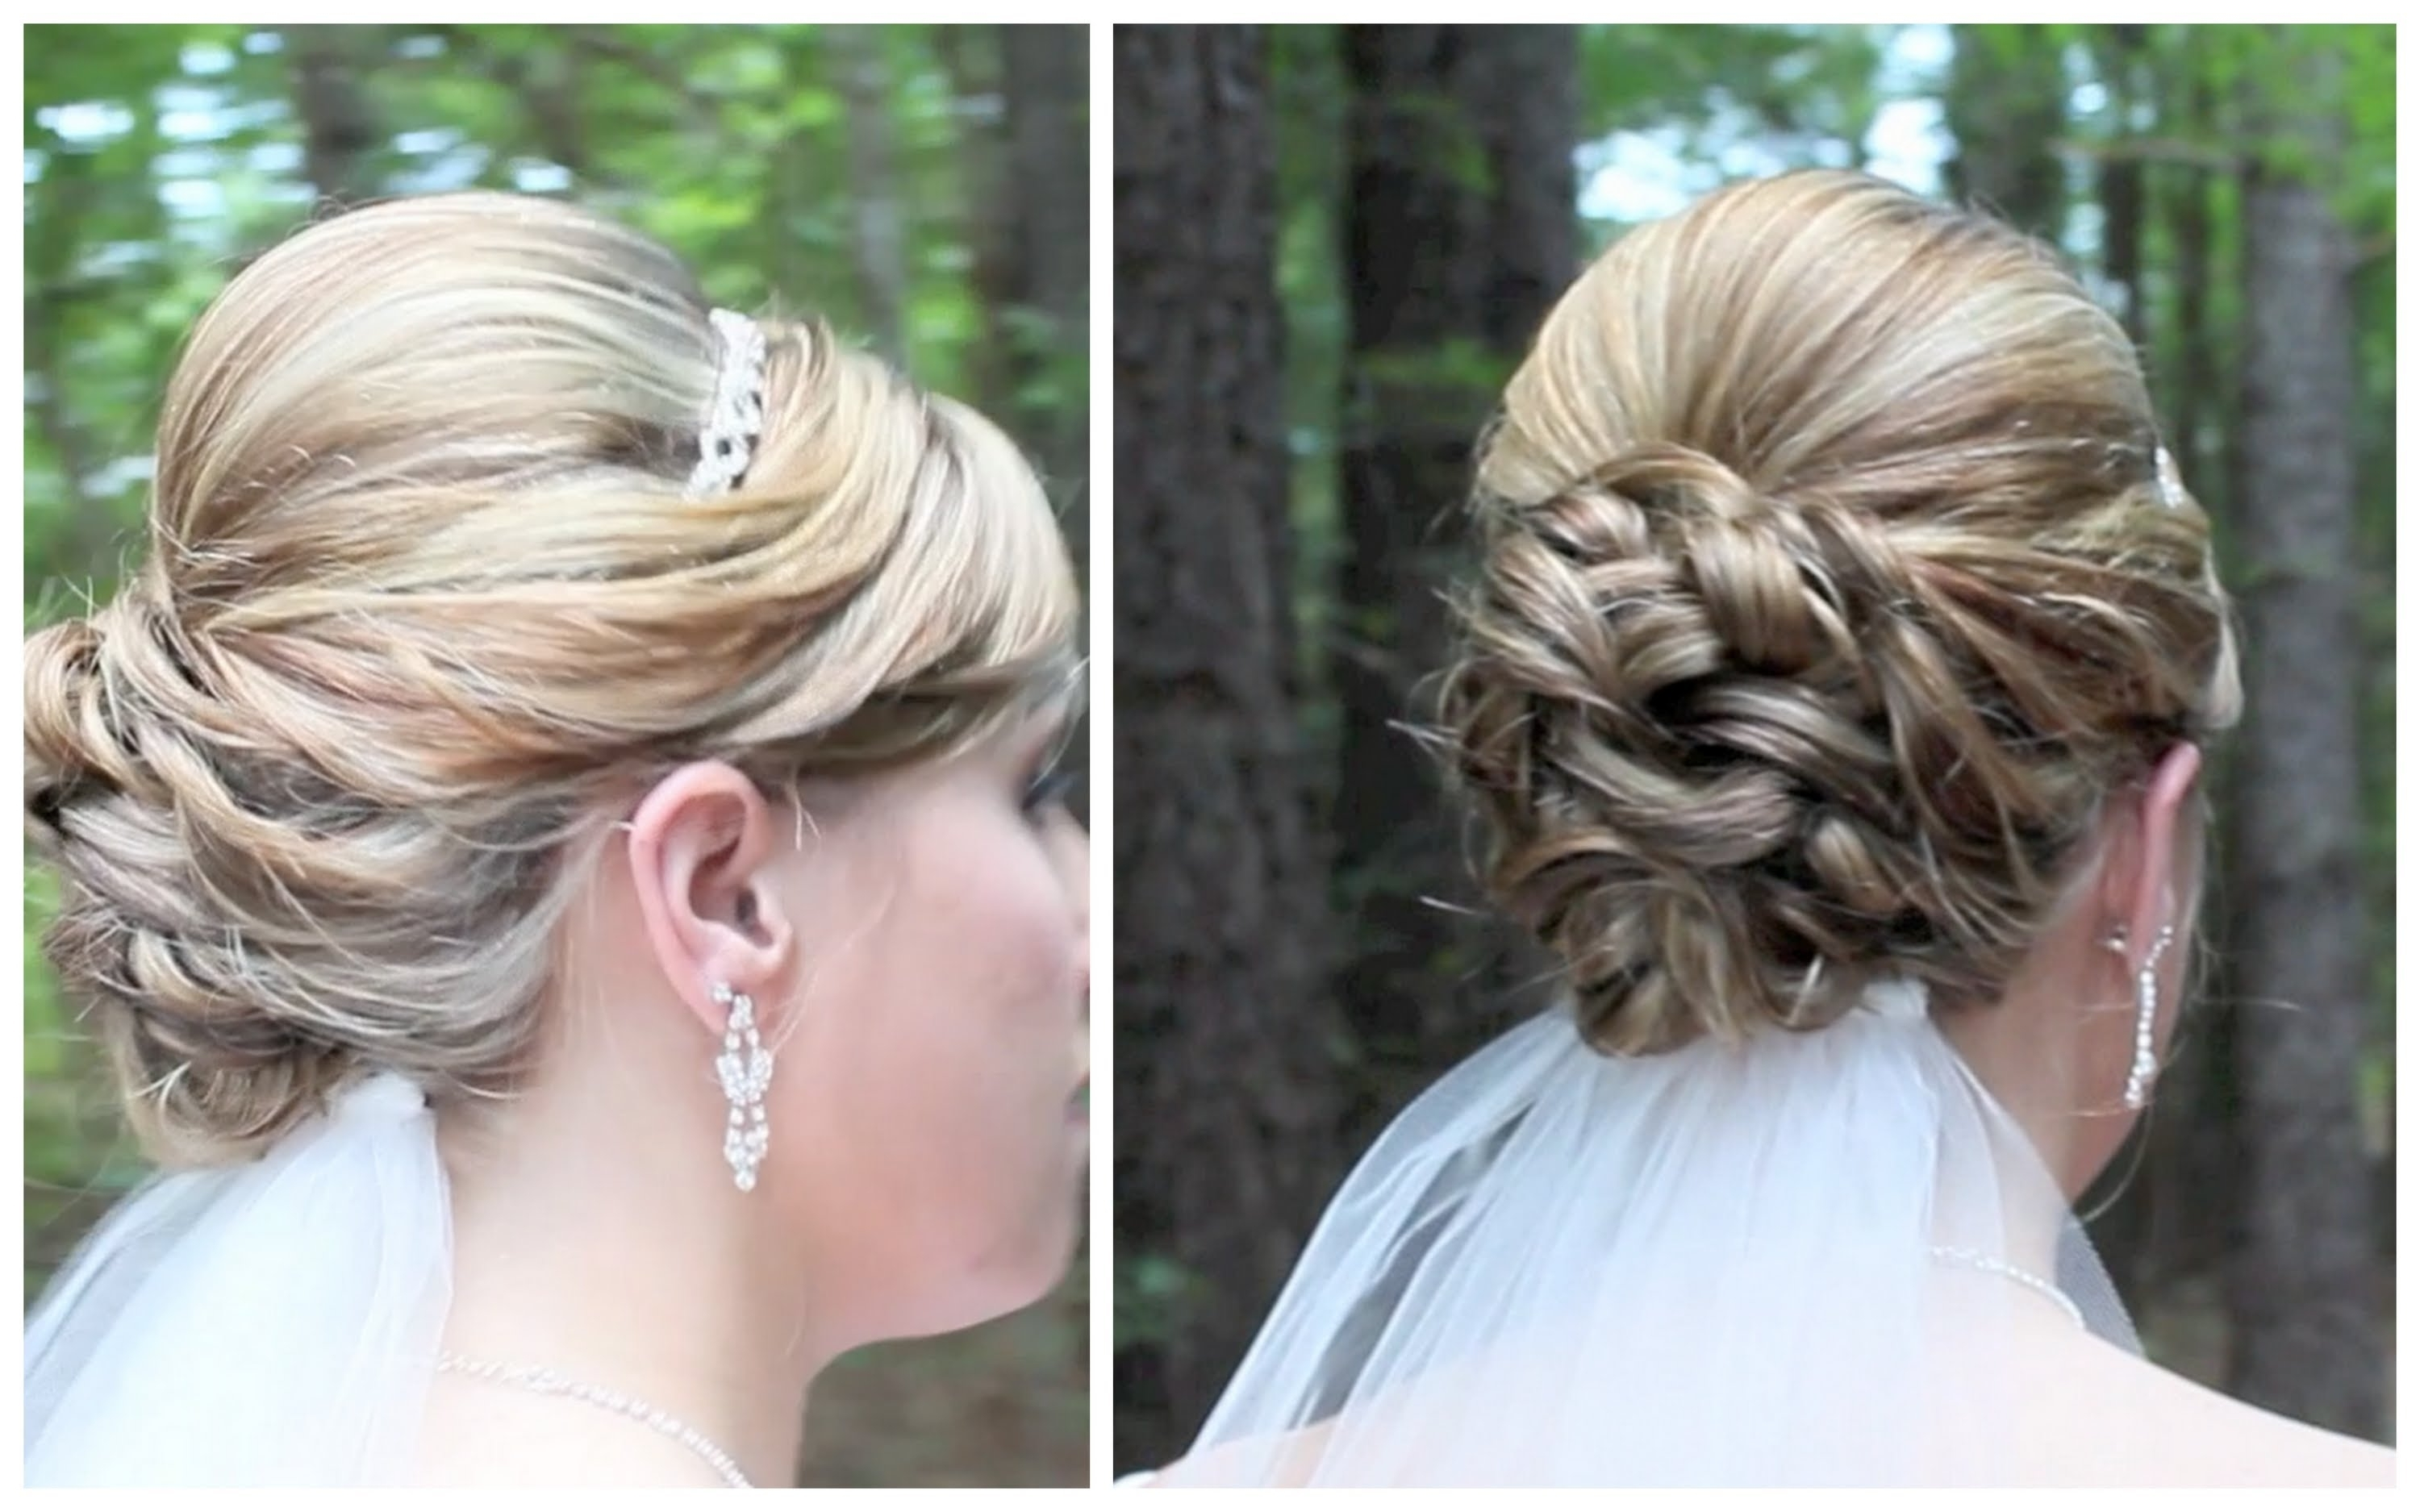 Most Recent Wedding Hairstyles For Short To Mid Length Hair In Bridal Updo On Shoulder Length Hair – Youtube (View 3 of 15)